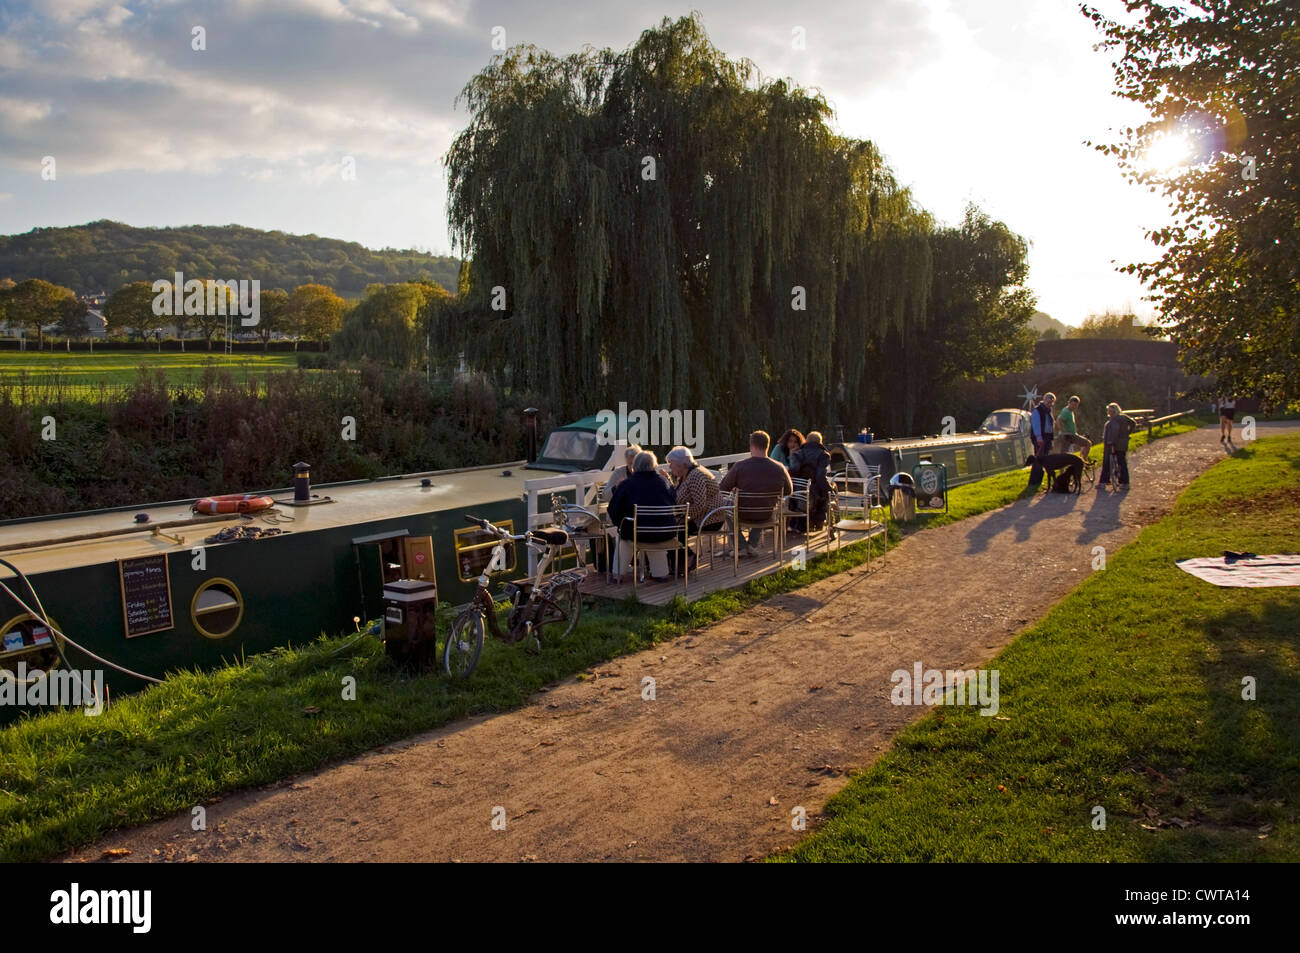 Customers sitting by the Kennet and Avon canal enjoying coffee tea and cakes at the Raft Cafe Boat - Stock Image